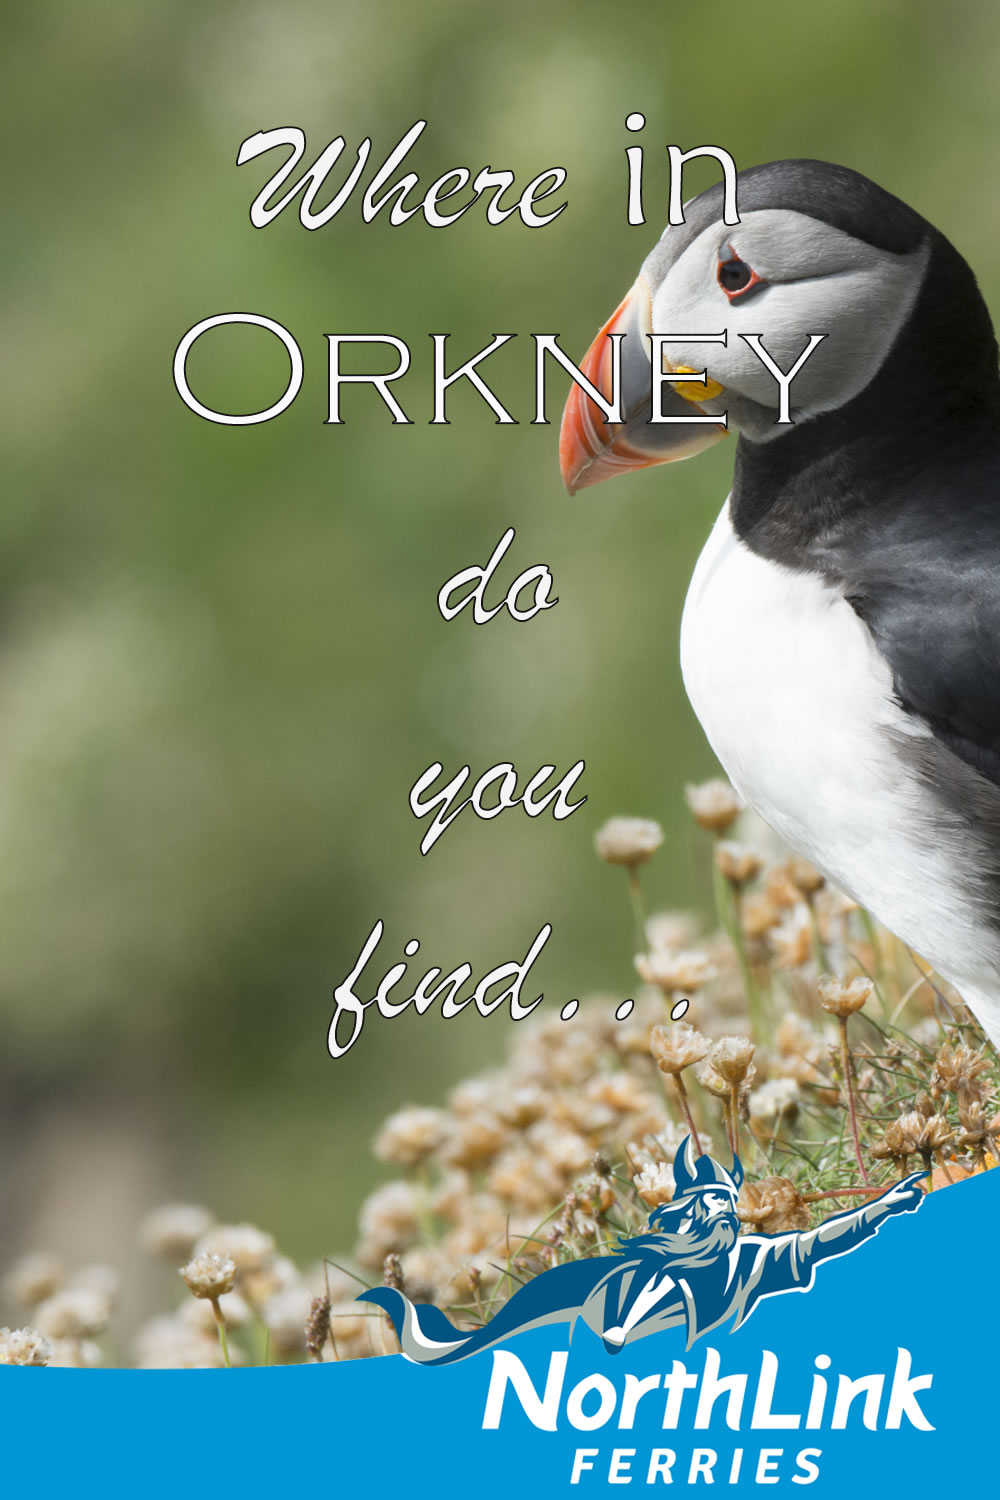 Where in Orkney do you find...